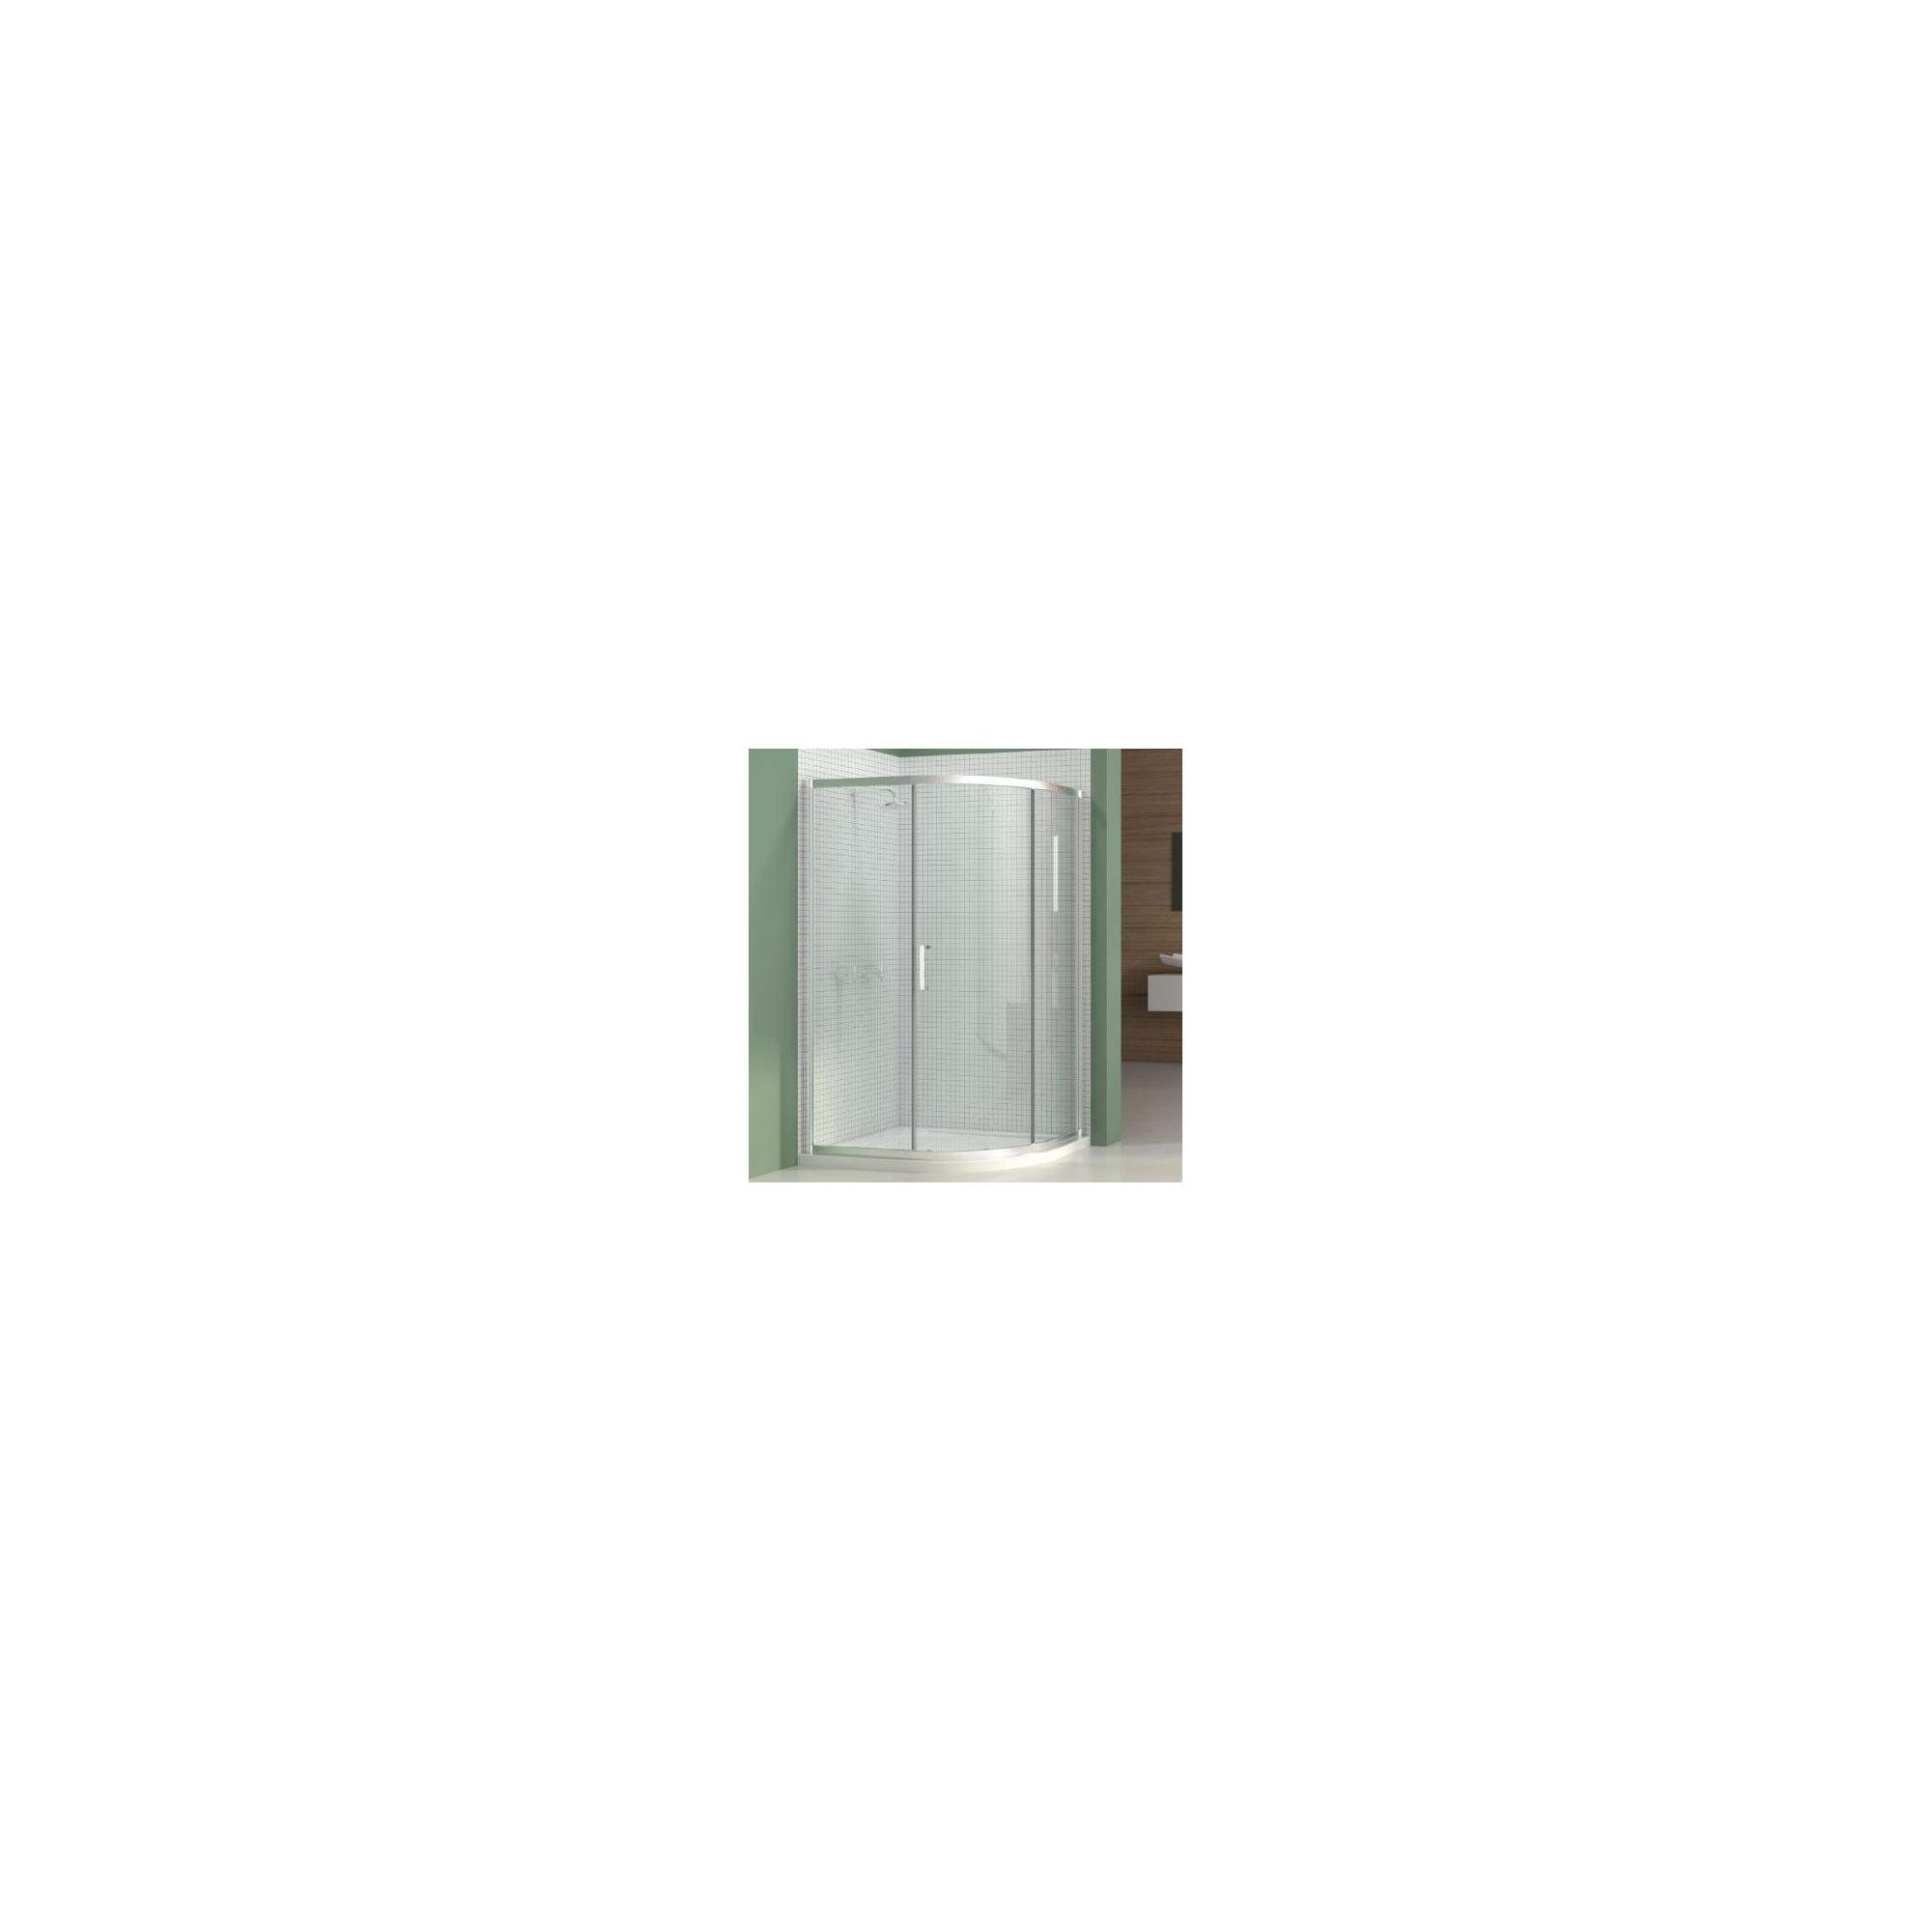 Merlyn Vivid Six Offset Quadrant Shower Enclosure, 1200mm x 800mm, Right Handed, Low Profile Tray, 6mm Glass at Tesco Direct